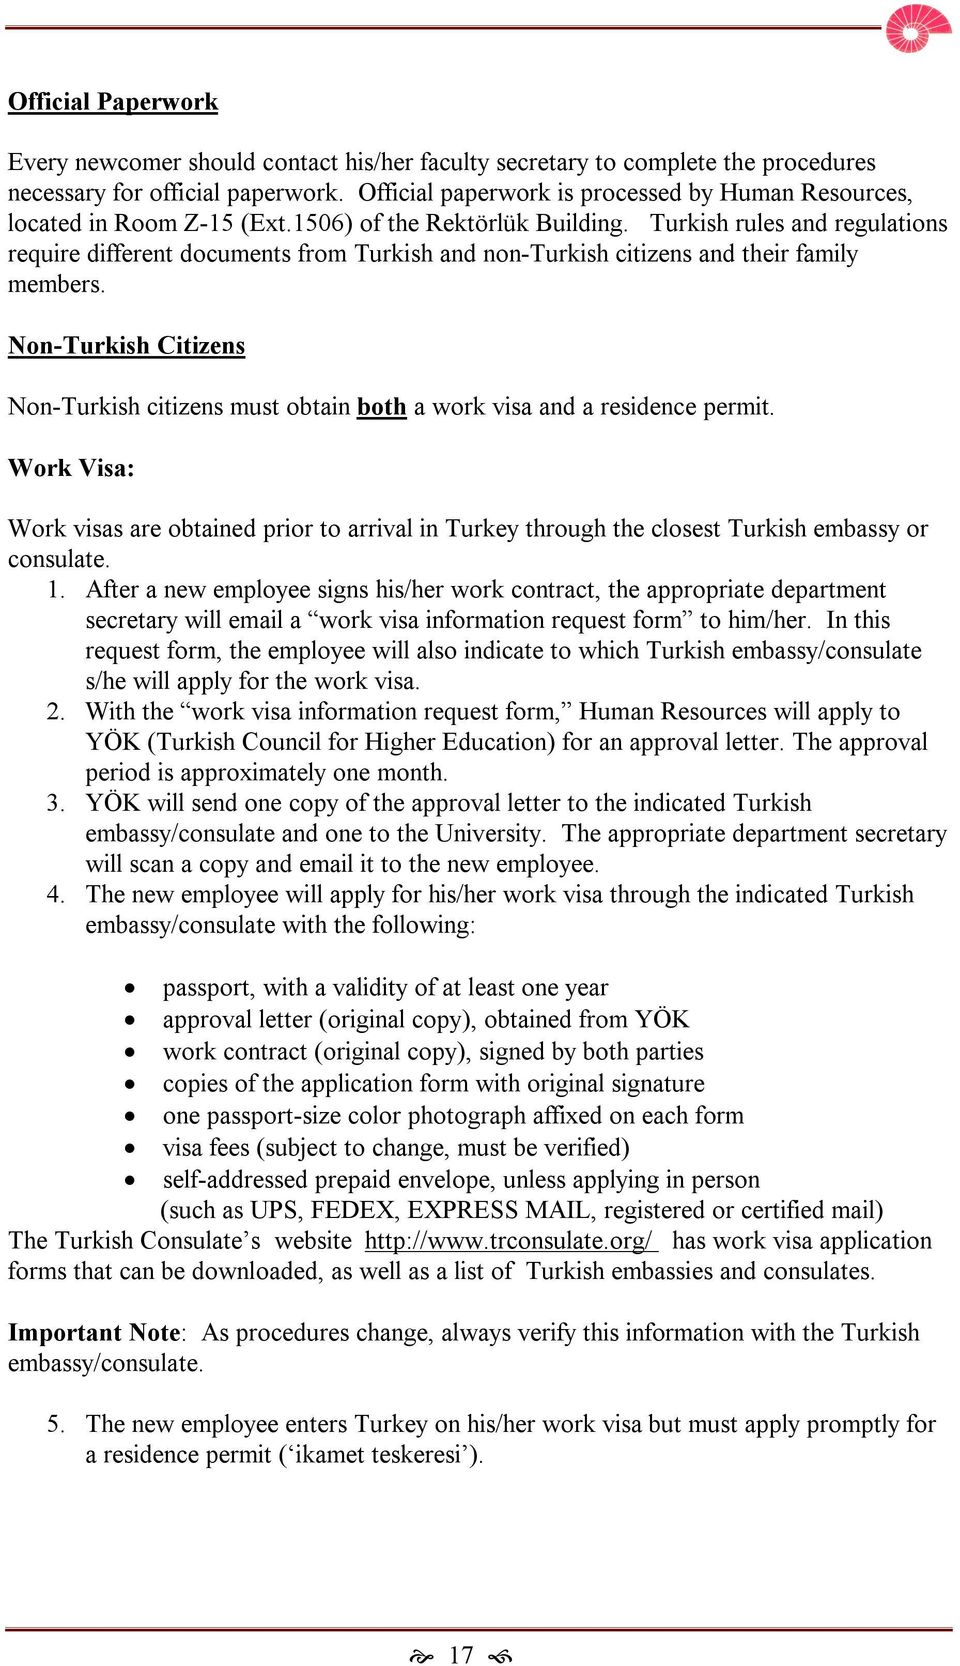 Turkish rules and regulations require different documents from Turkish and non-turkish citizens and their family members.